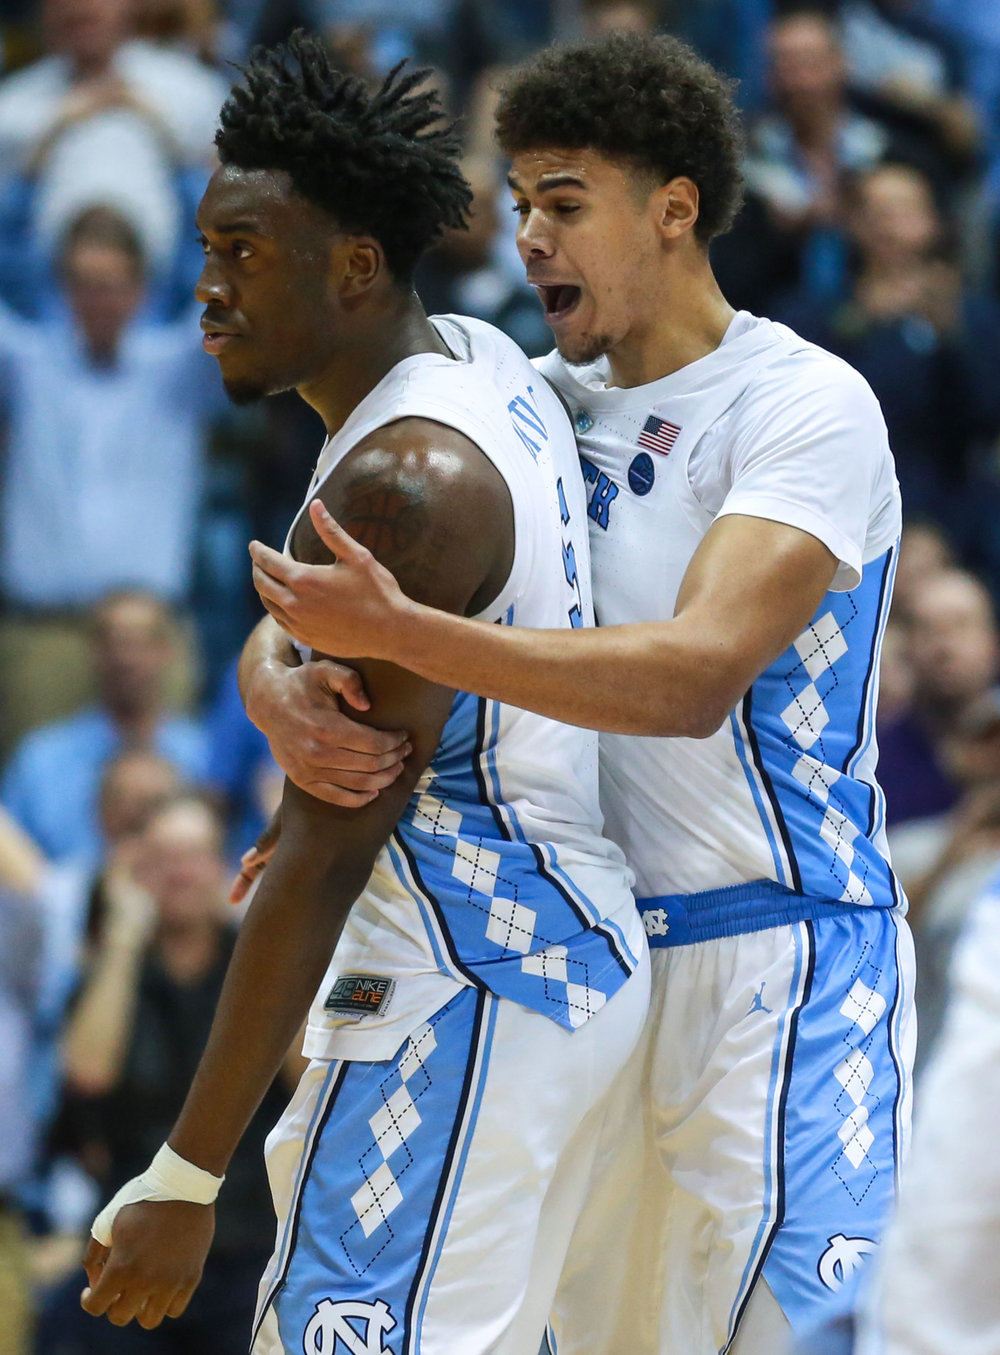 Cameron Johnson hypes up Nassir Little after an And-1 bucker during UNC's win over FSU. The graduate transfer and freshmen tied for the lead in points for UNC, each bringing in 18 over the course of the afternoon.   Photo by Alex Kormann